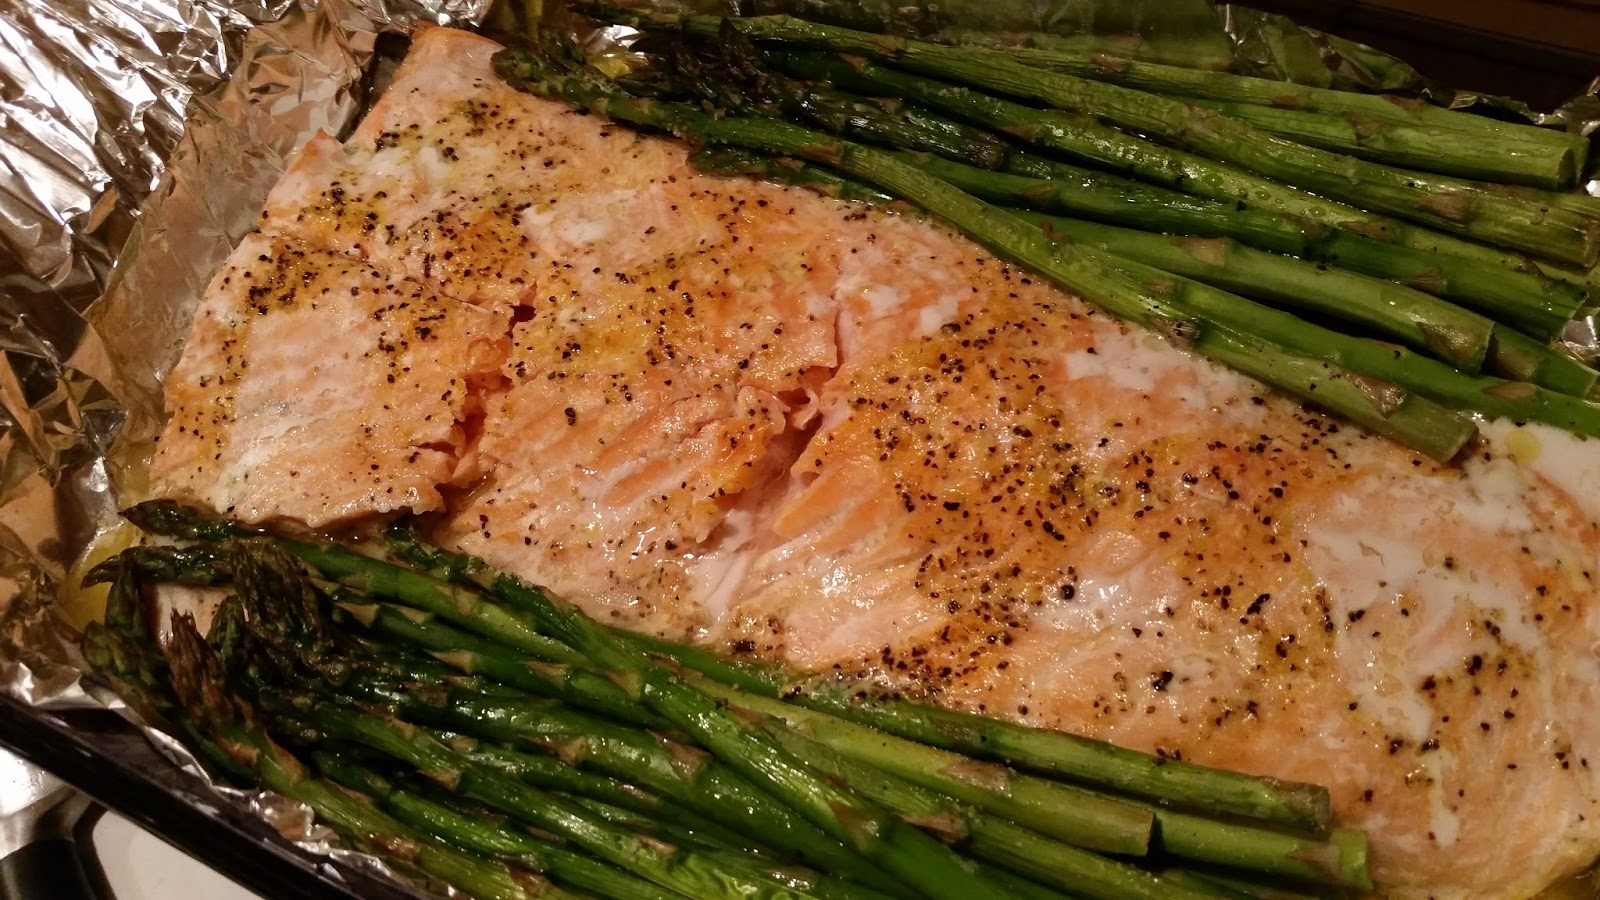 Neighbor Julia: Easy Baked Salmon and Veggies